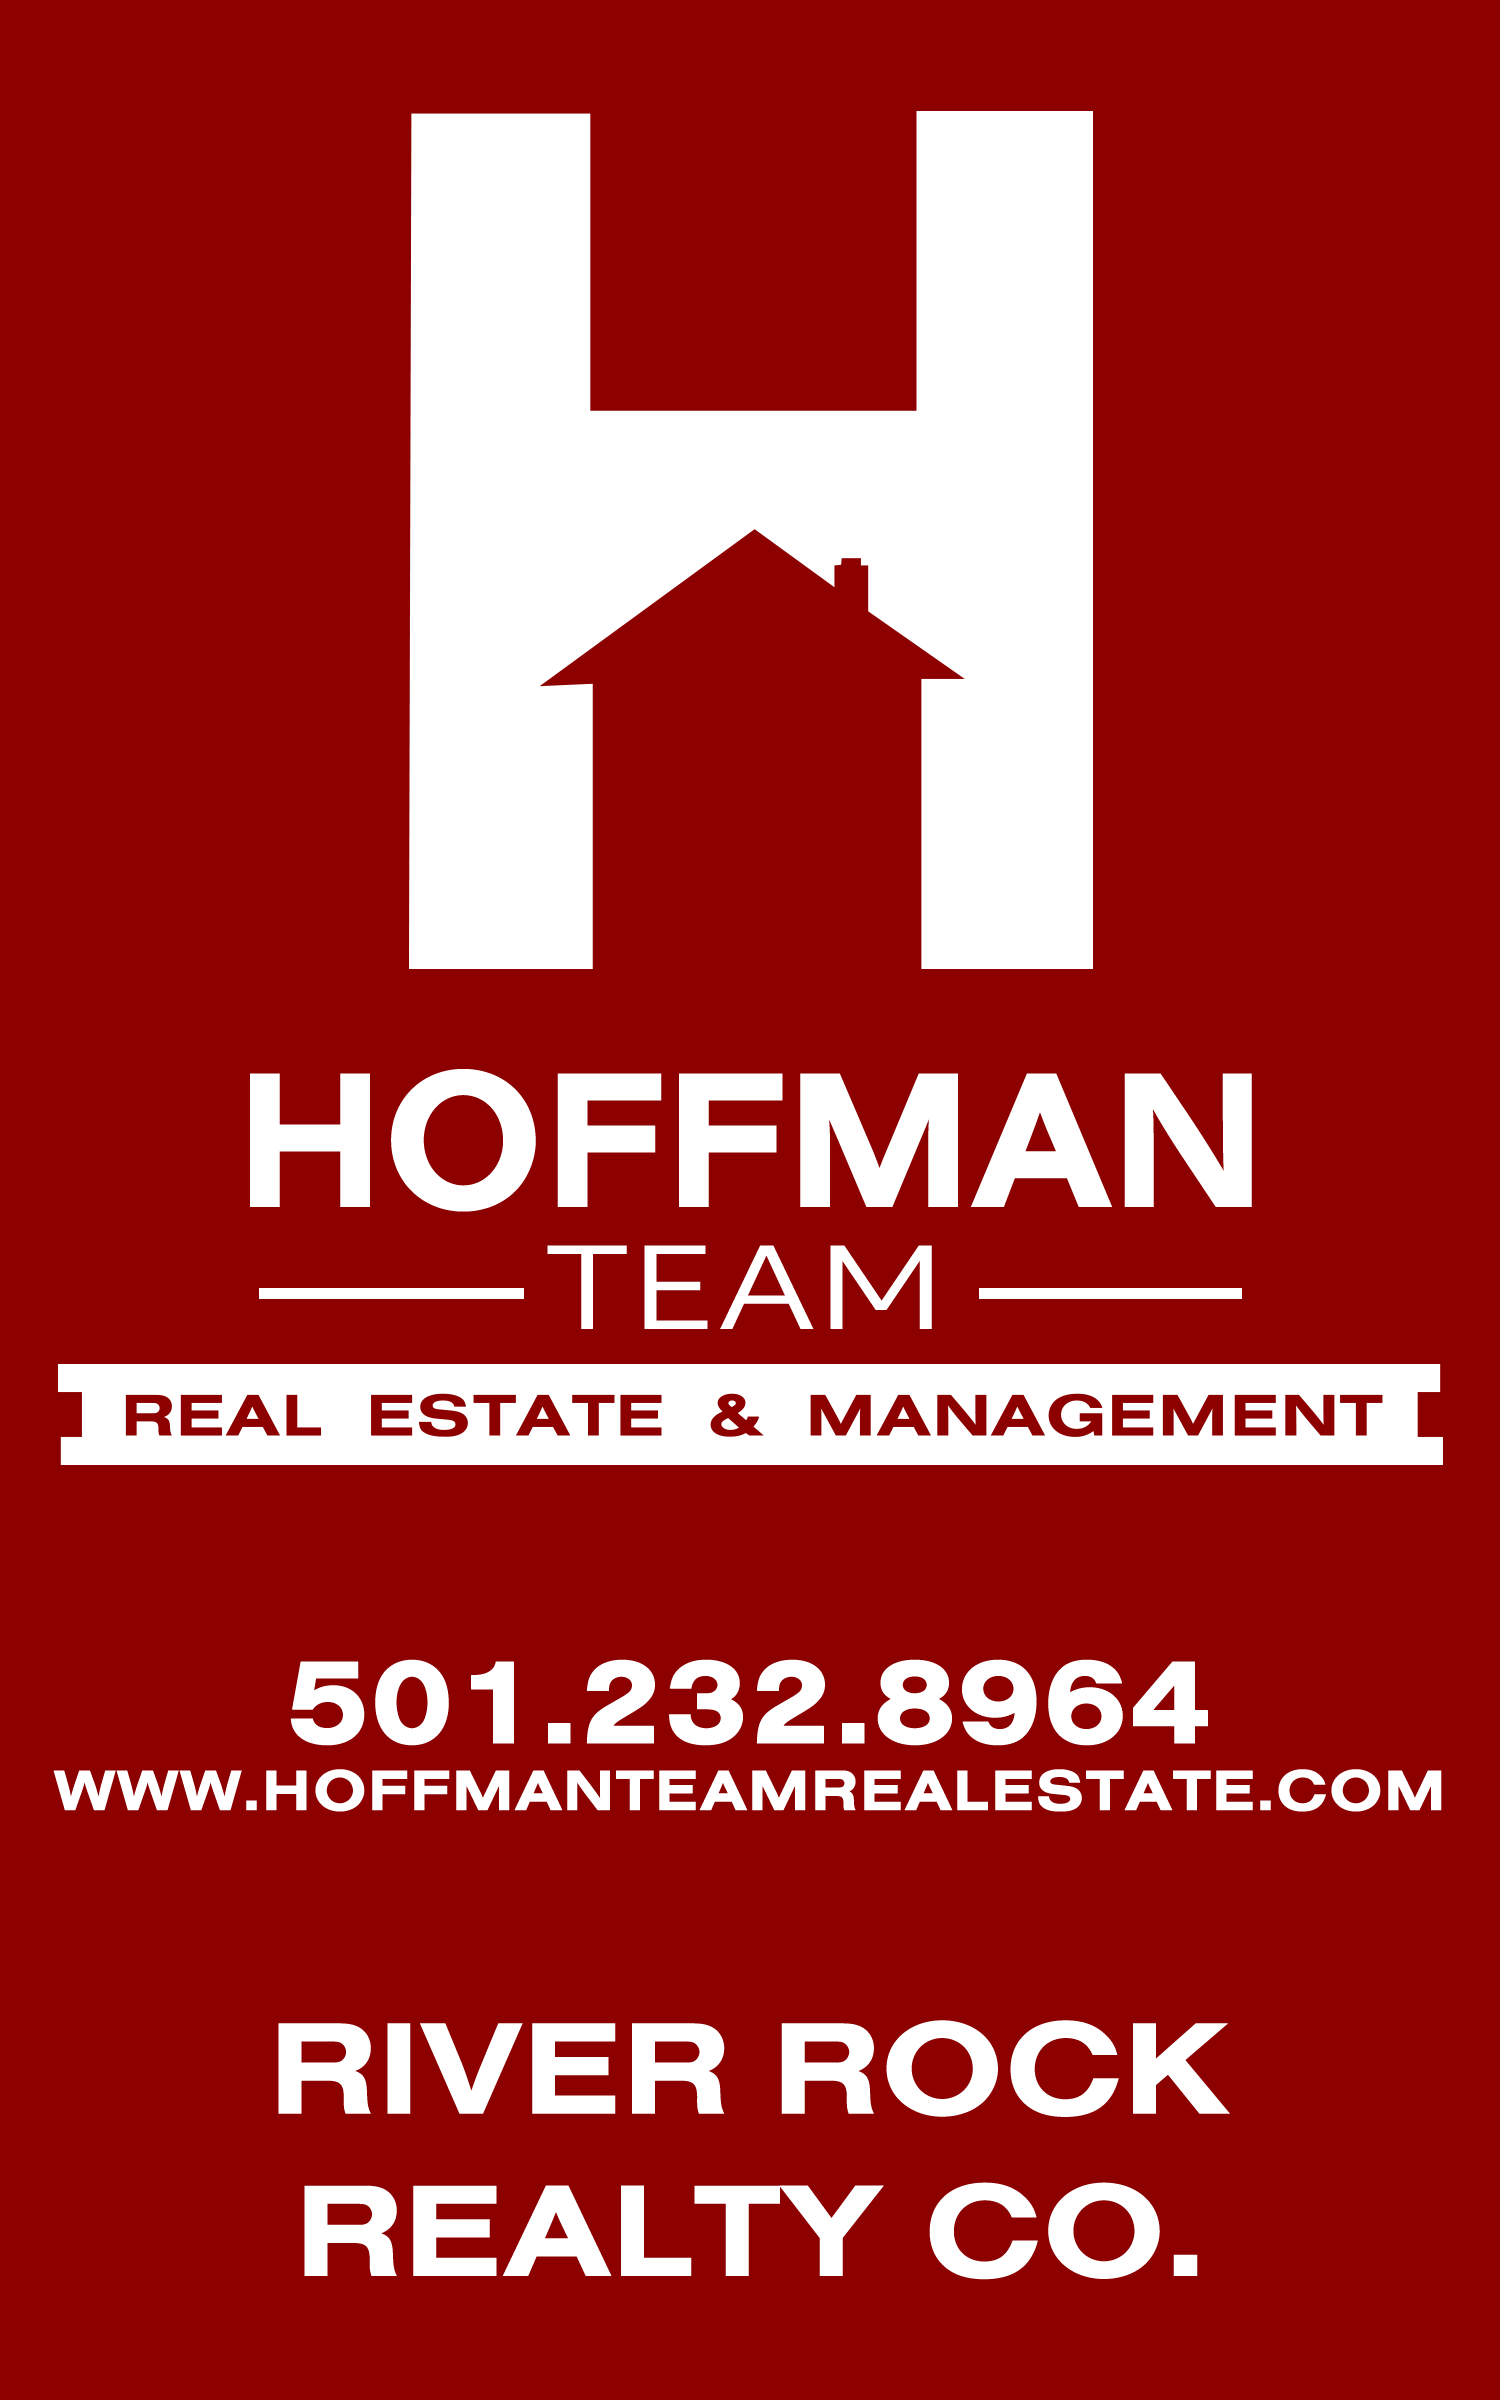 Hoffman Team Real Estate